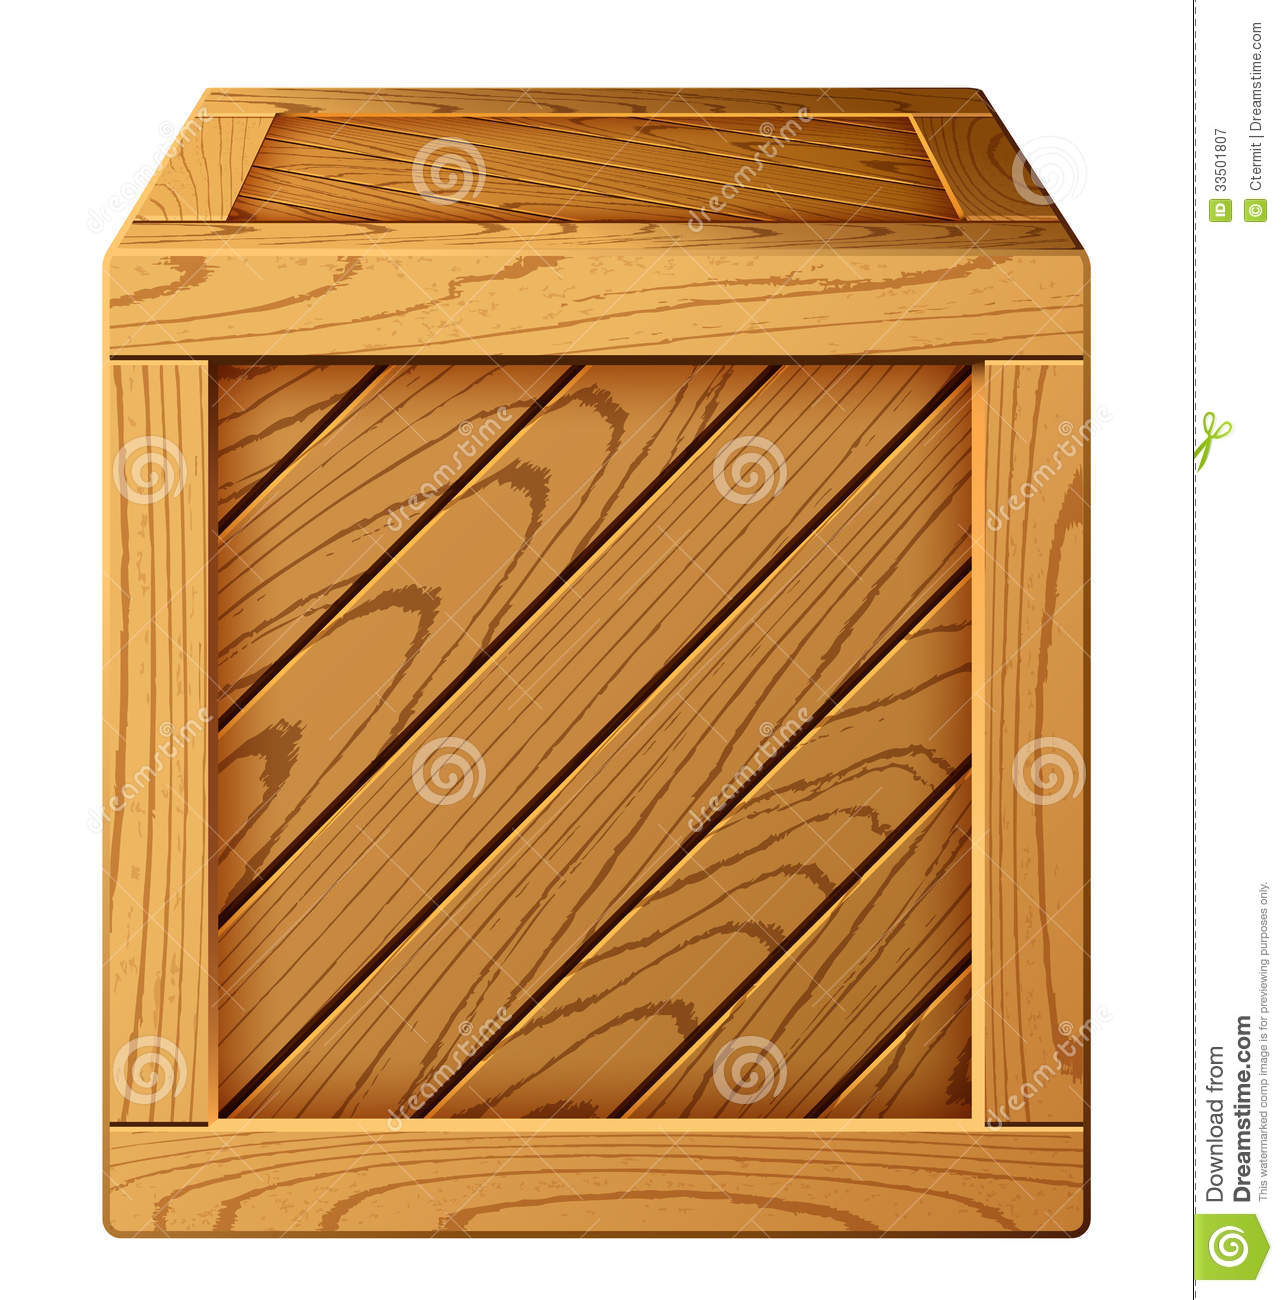 Wooden box stock vector. Image of icon, import, pine ...